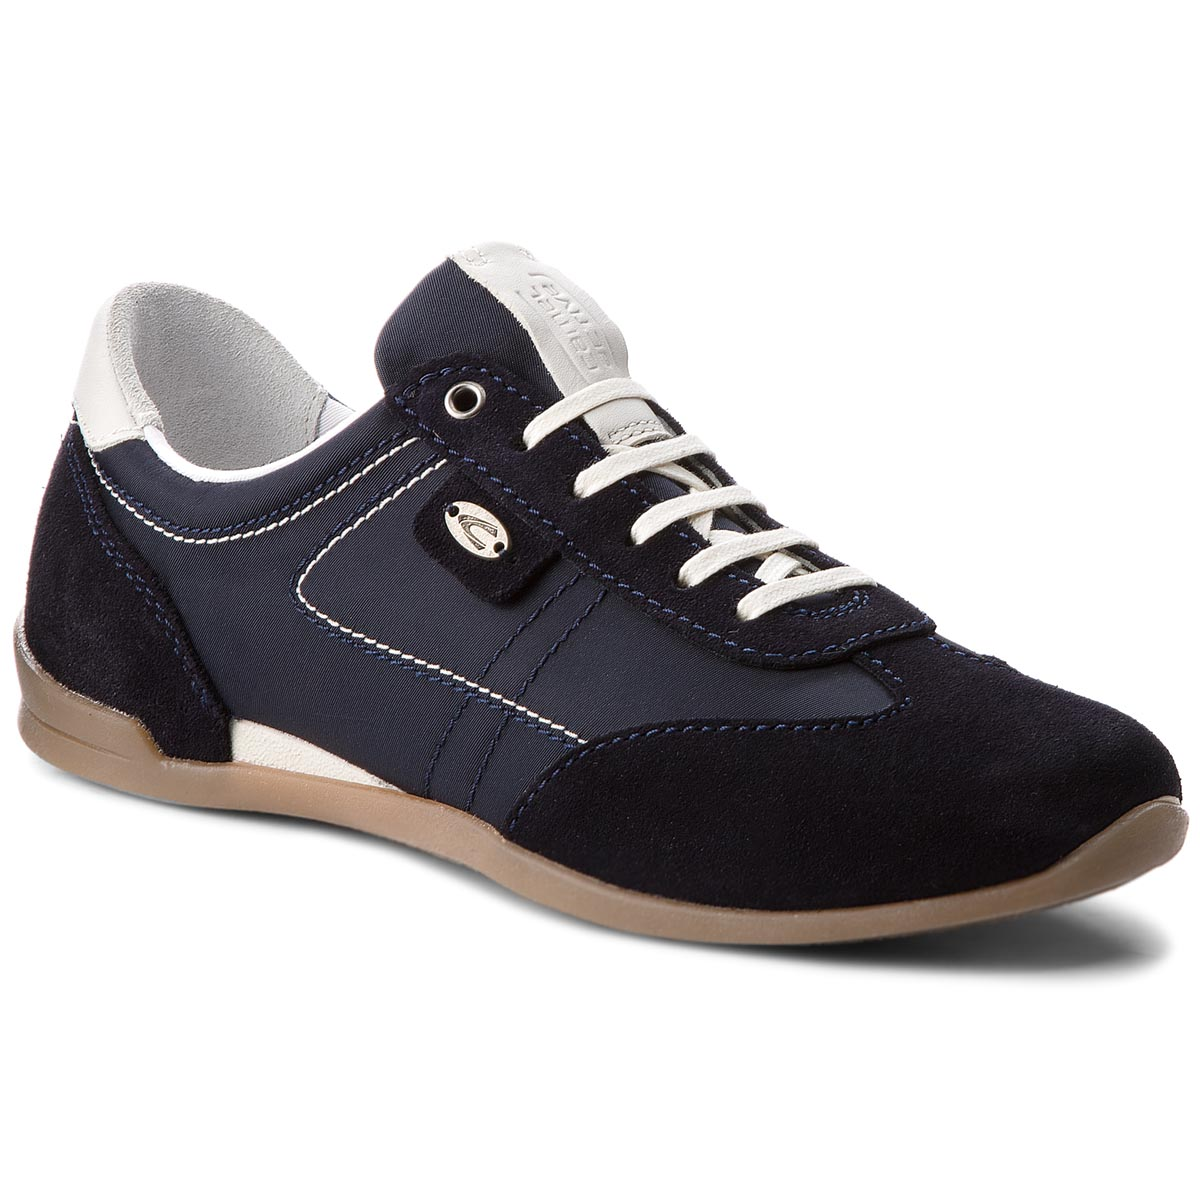 Sneakers CAMEL ACTIVE - Satellite 882.70.02 Midnight/White